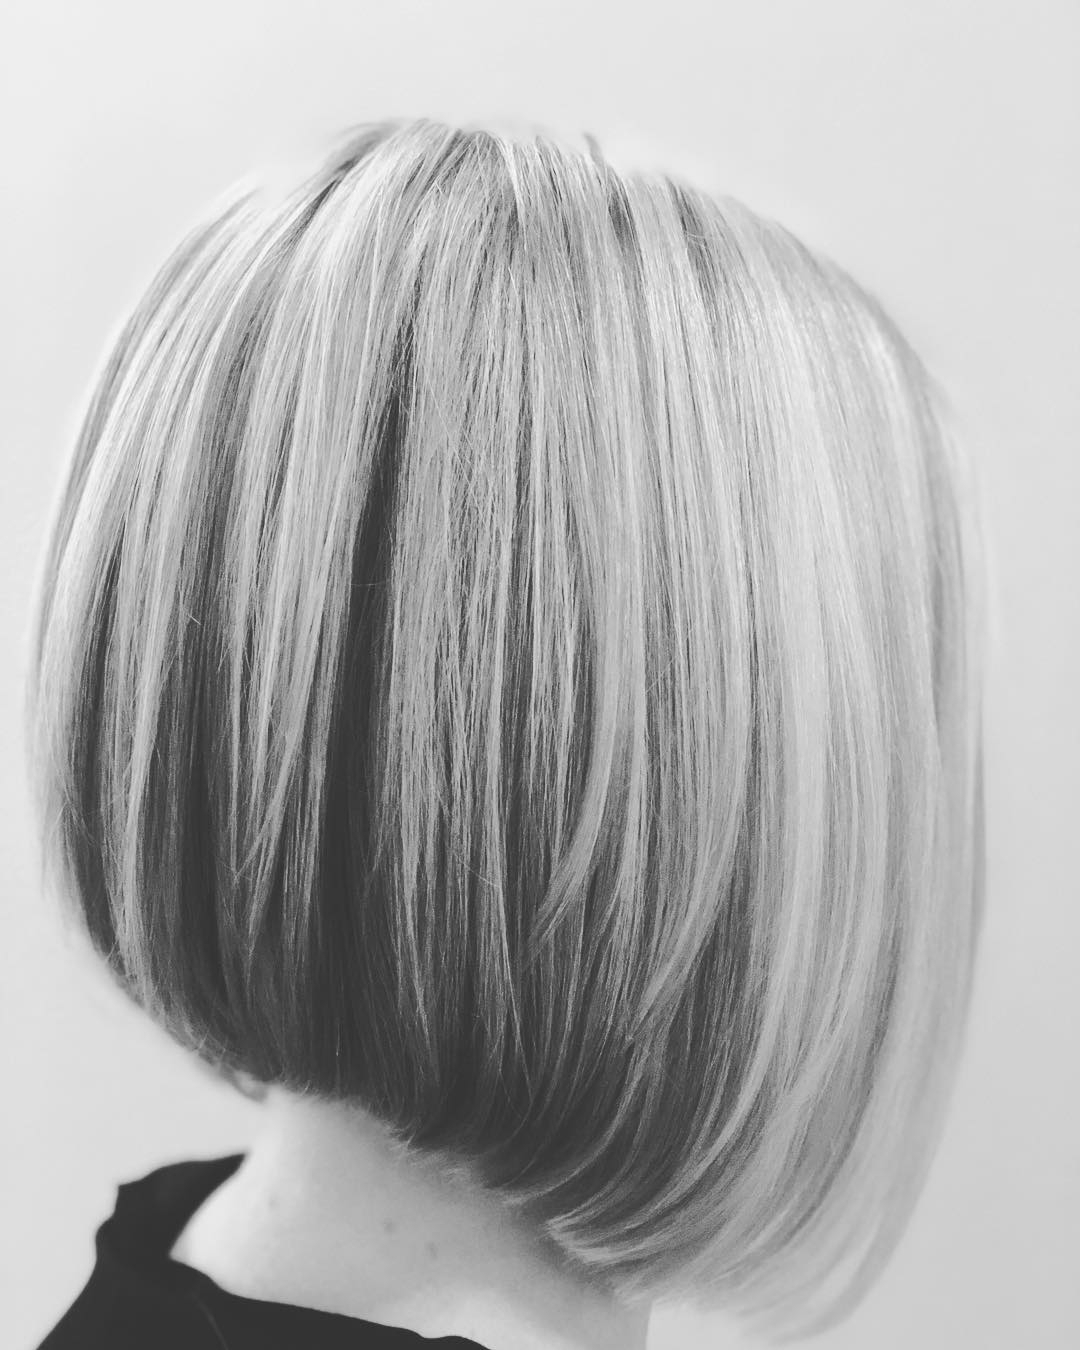 Bob Hairstyles For 2018 – 19 Short Haircut Trends To Try Now – Lookvine In Layered Platinum Bob Hairstyles (View 12 of 20)